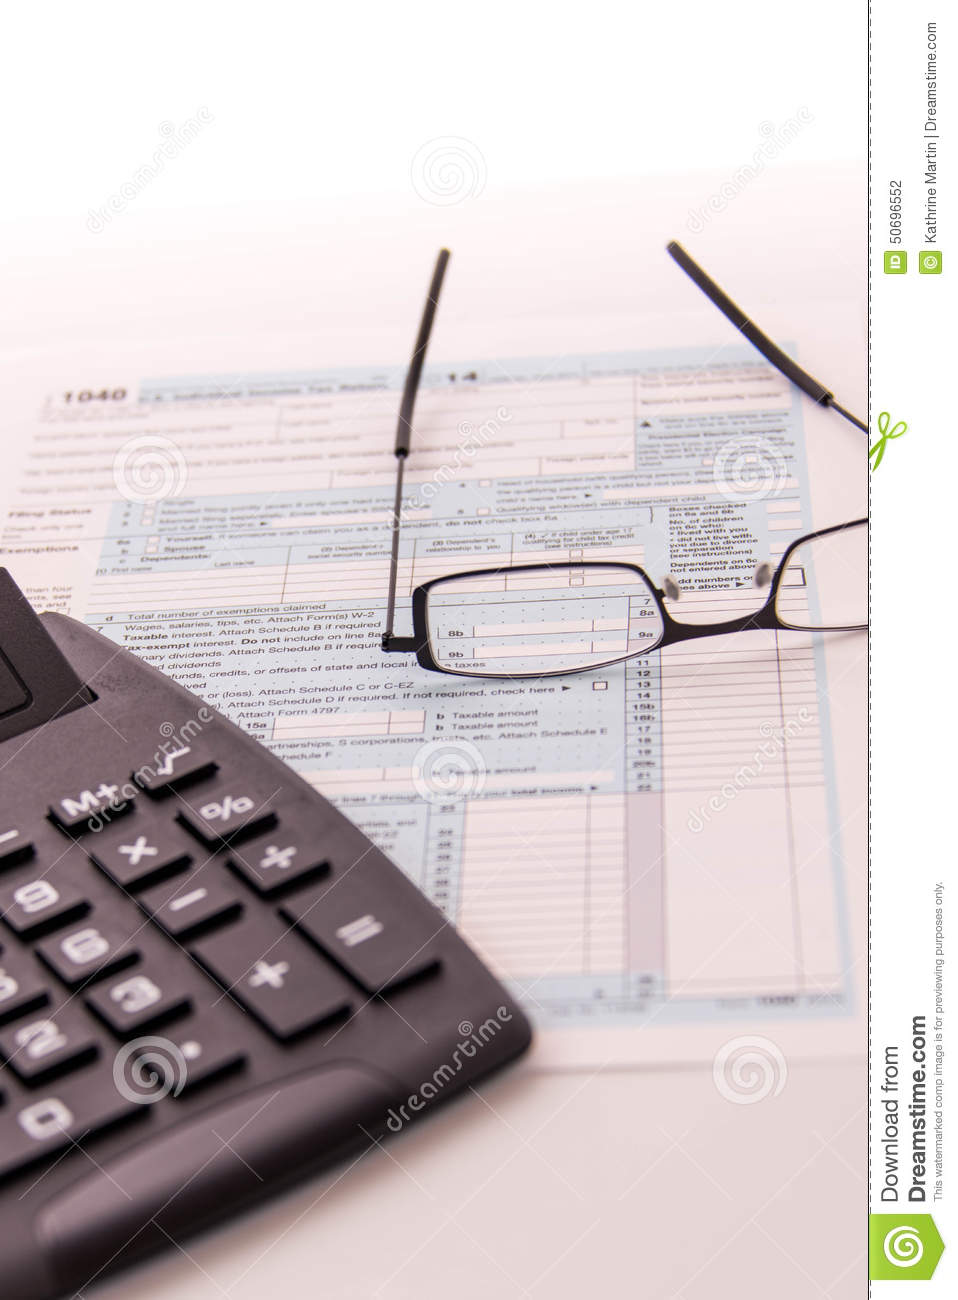 Tax preparation supplies, reading glasses and tax forms